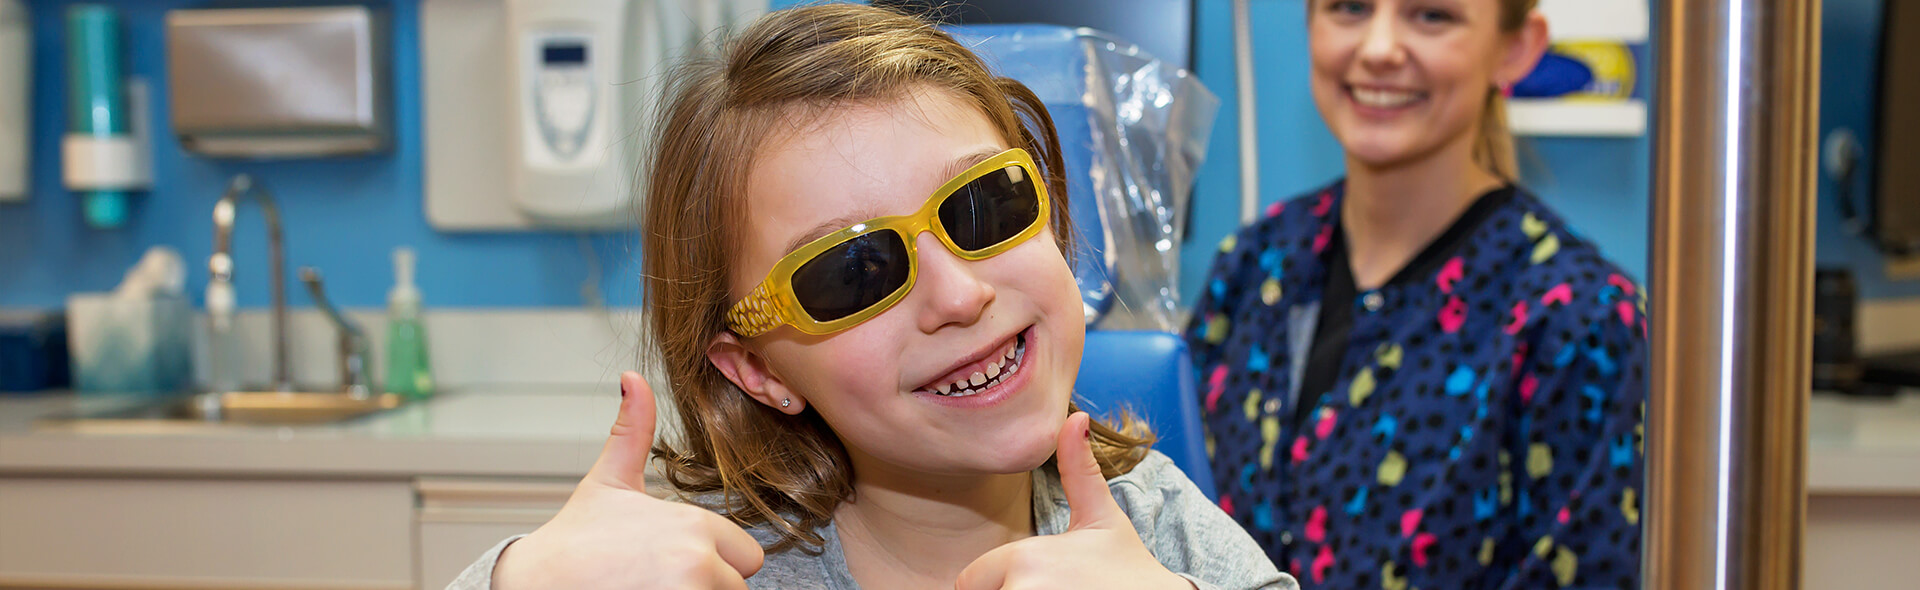 Girl with yellow glasses - Pediatric Dentist in Hales Corners, WI